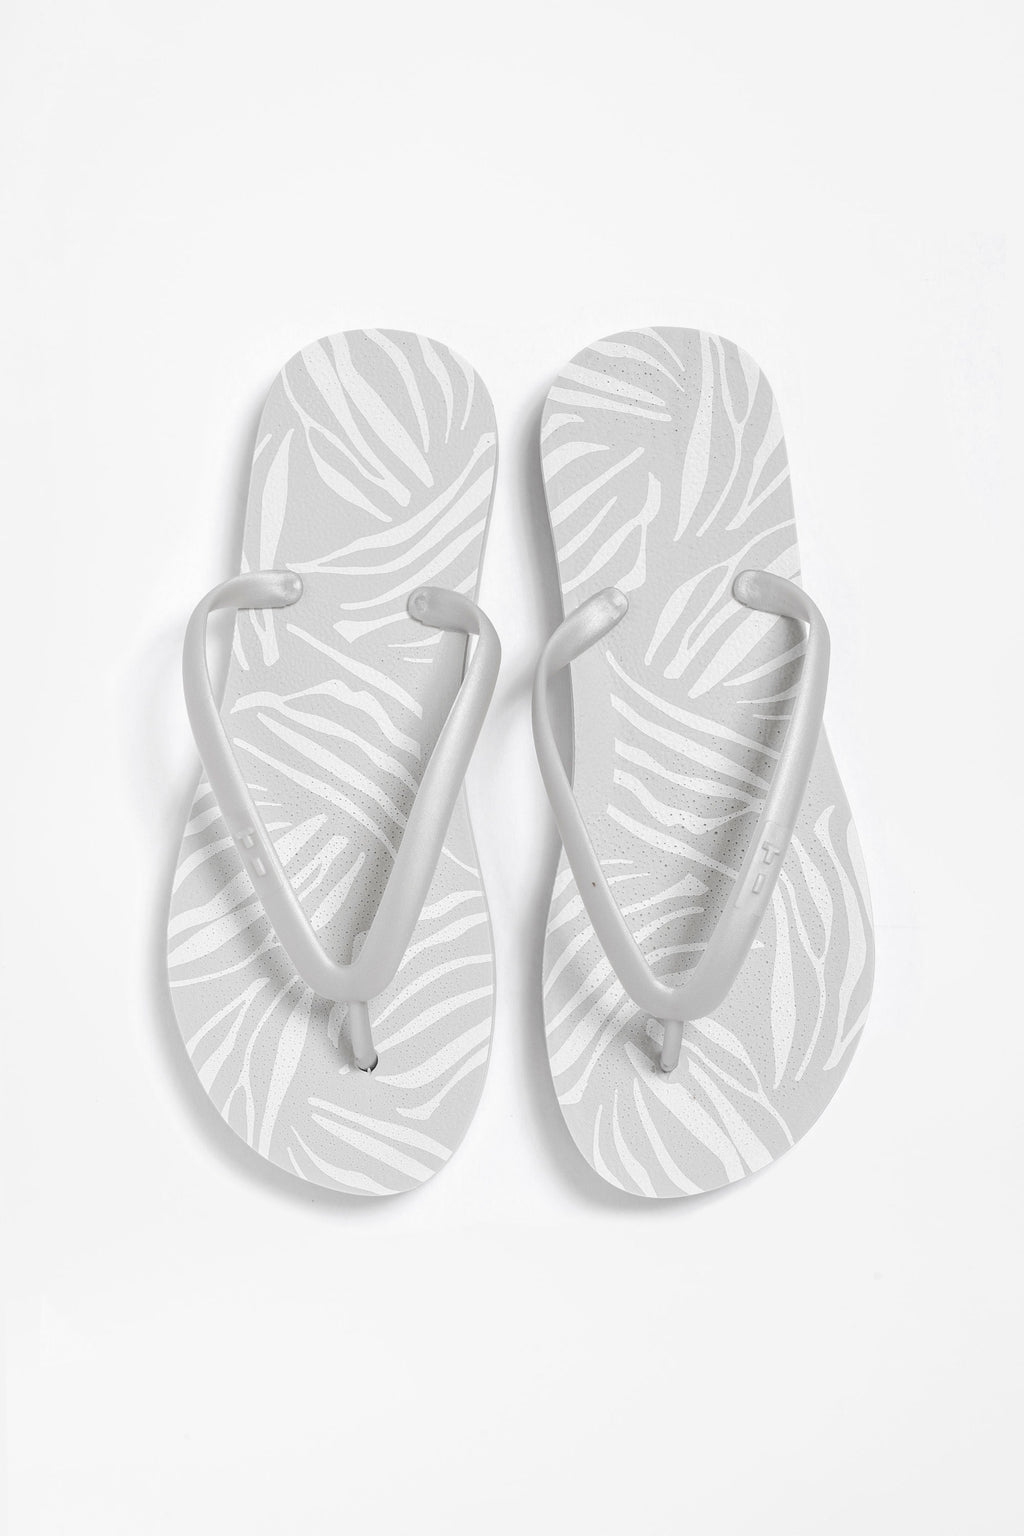 Light grey flip flops for women with silver strap